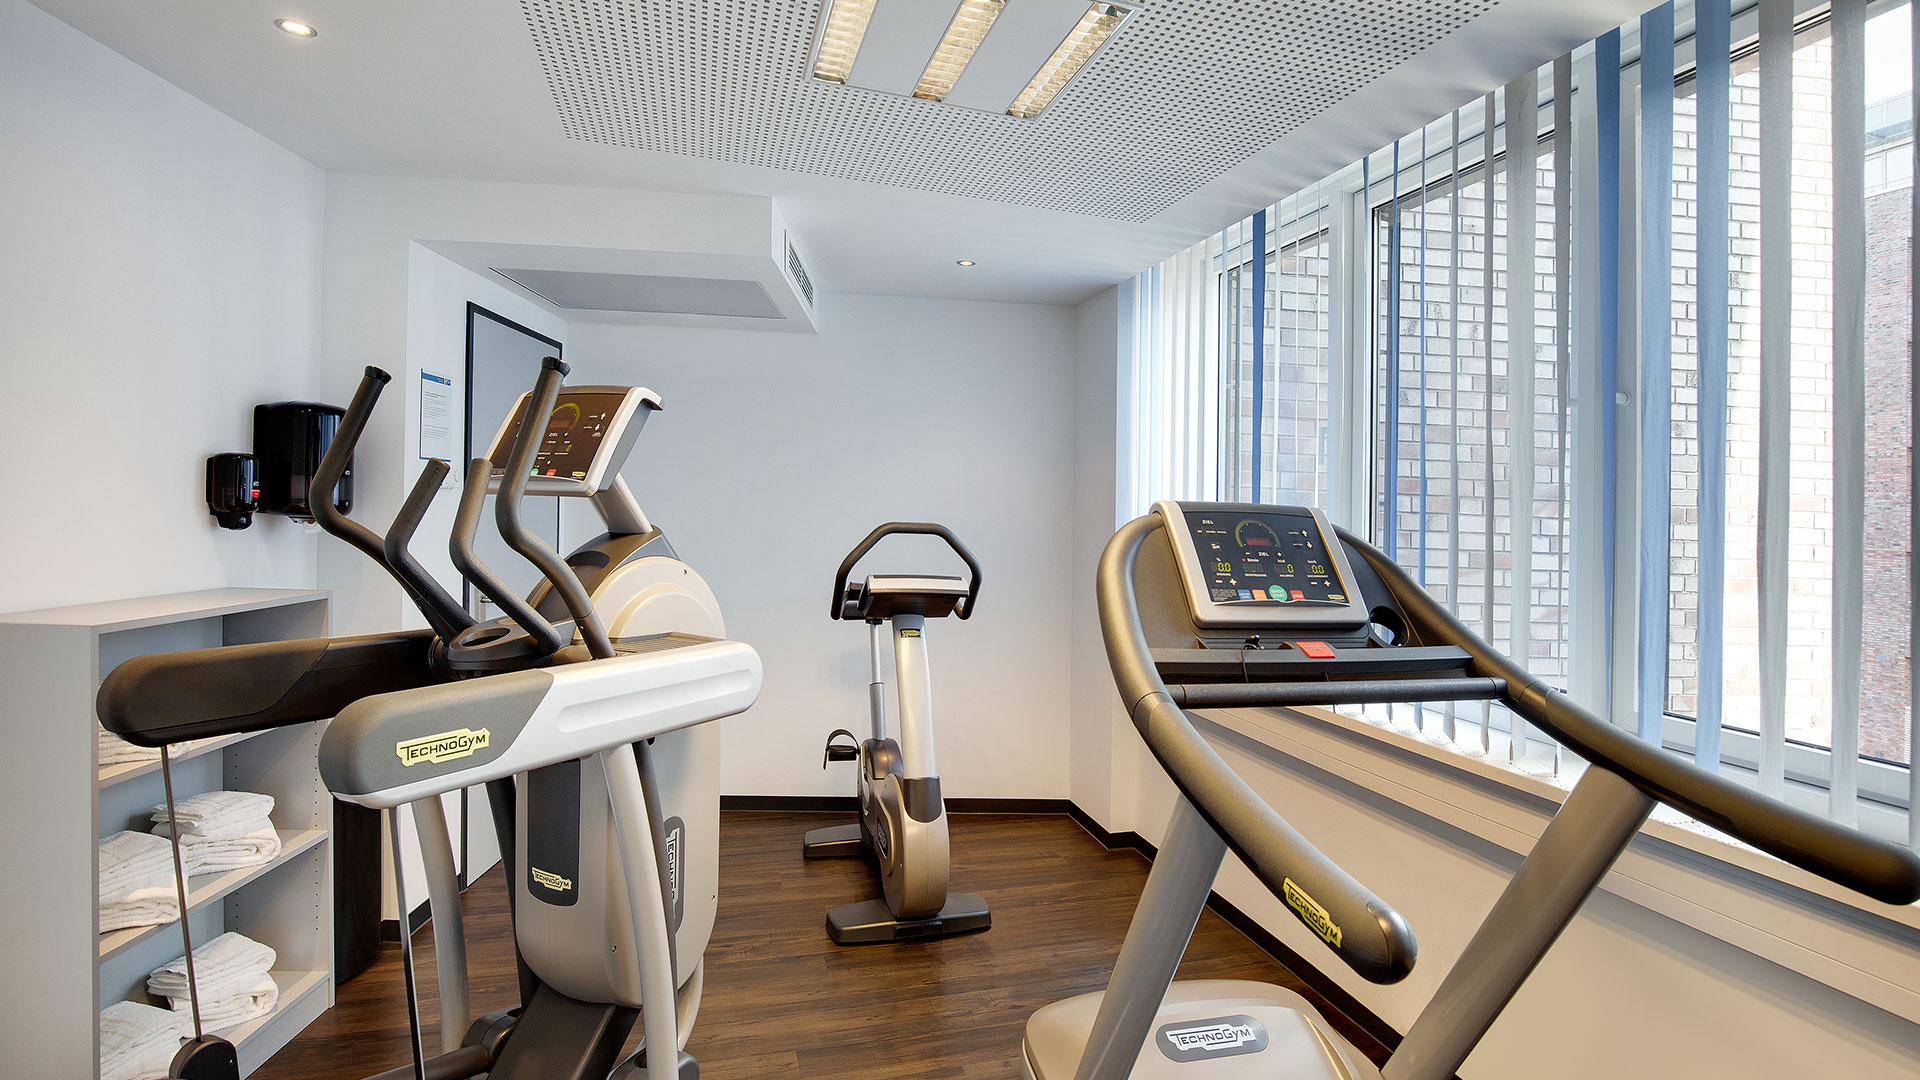 Photo of the fitness room - 01 - HIEX Bremen Airport